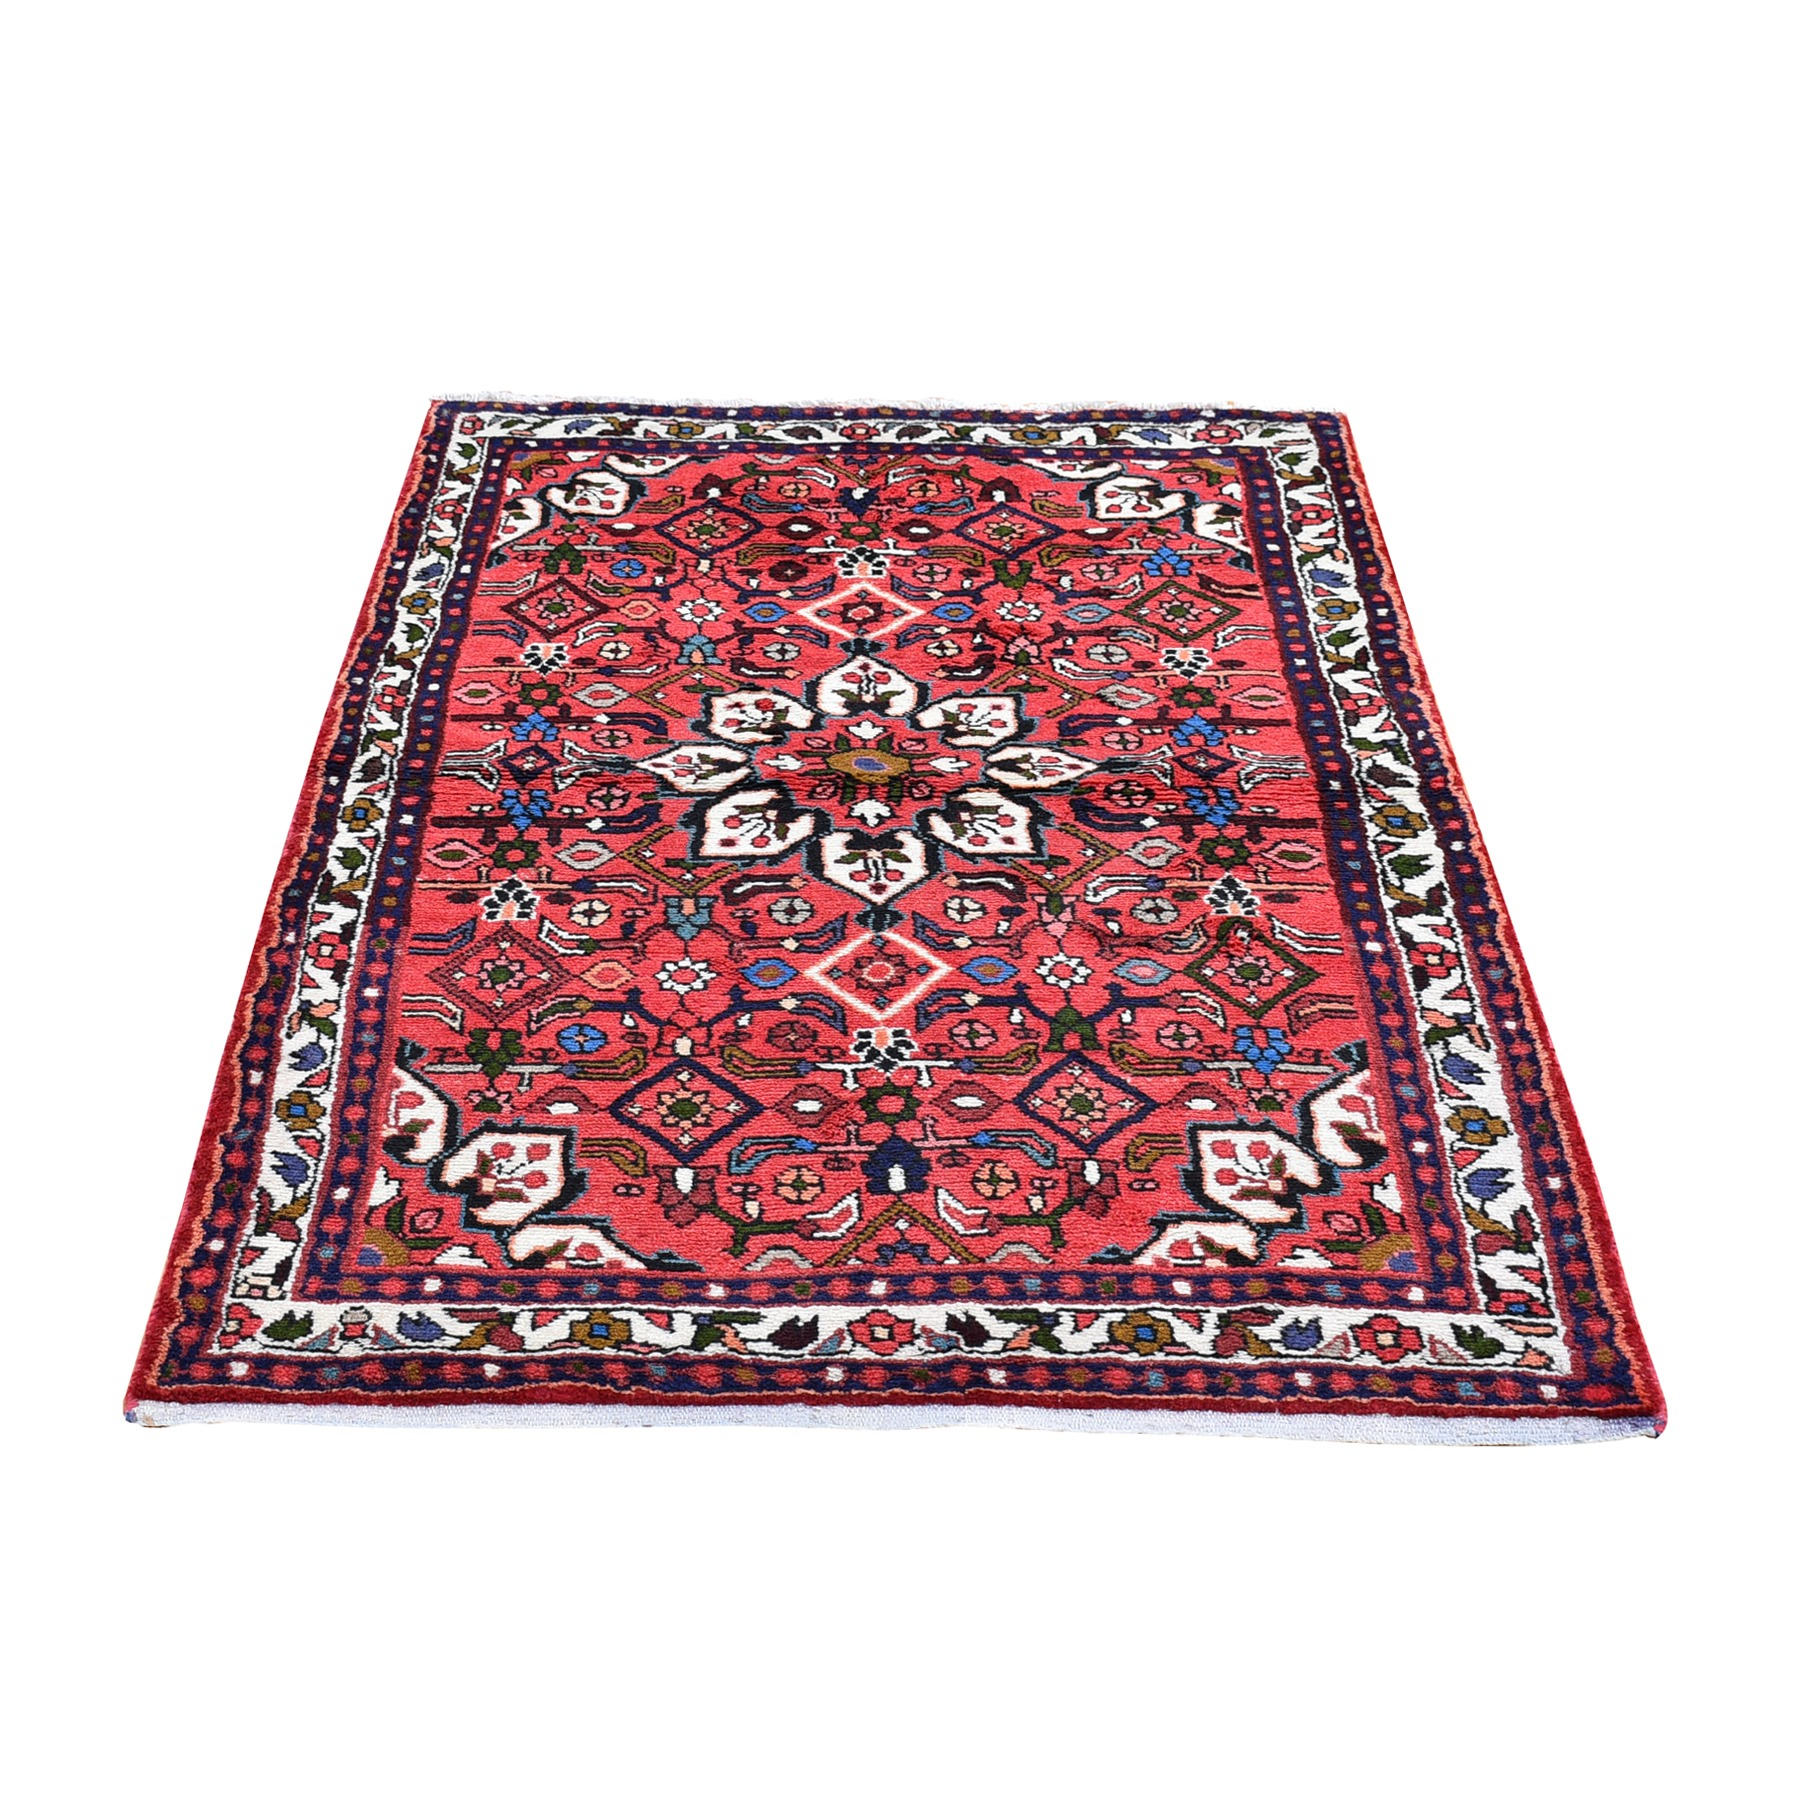 "3'5""x5'6"" Organic Wool New Persian Hamadan Flower Medallion Design Pink Hand Knotted Oriental Rug"